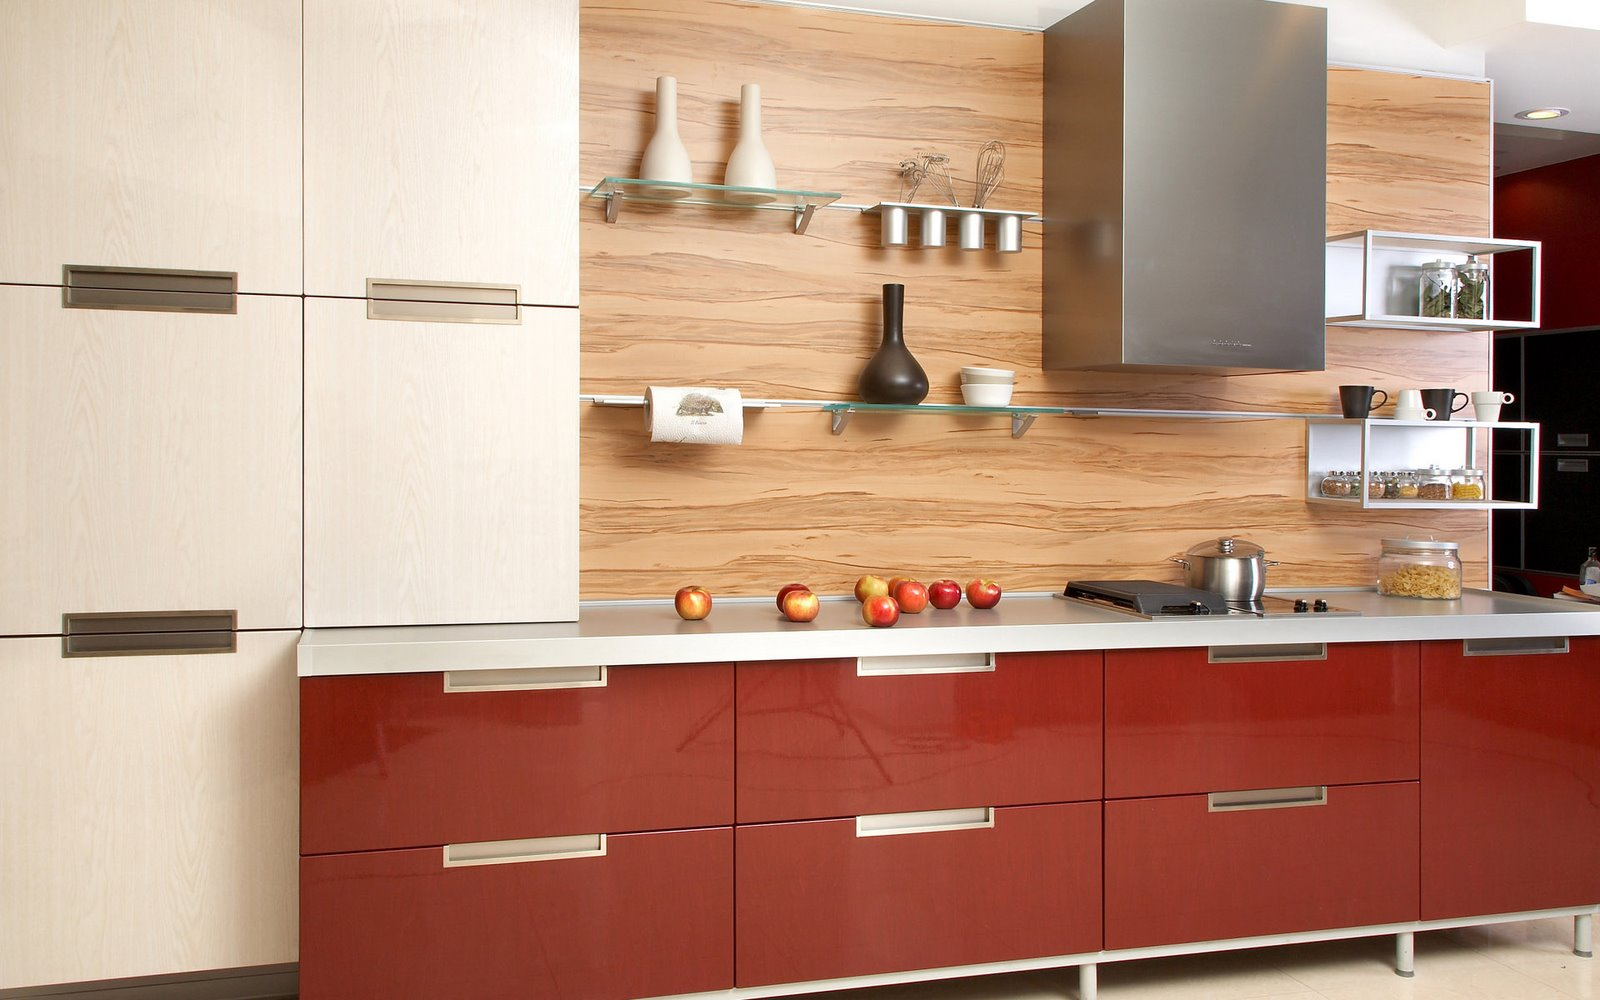 Modern wood kitchen design dream kitchens pinterest for Kitchen designs pics